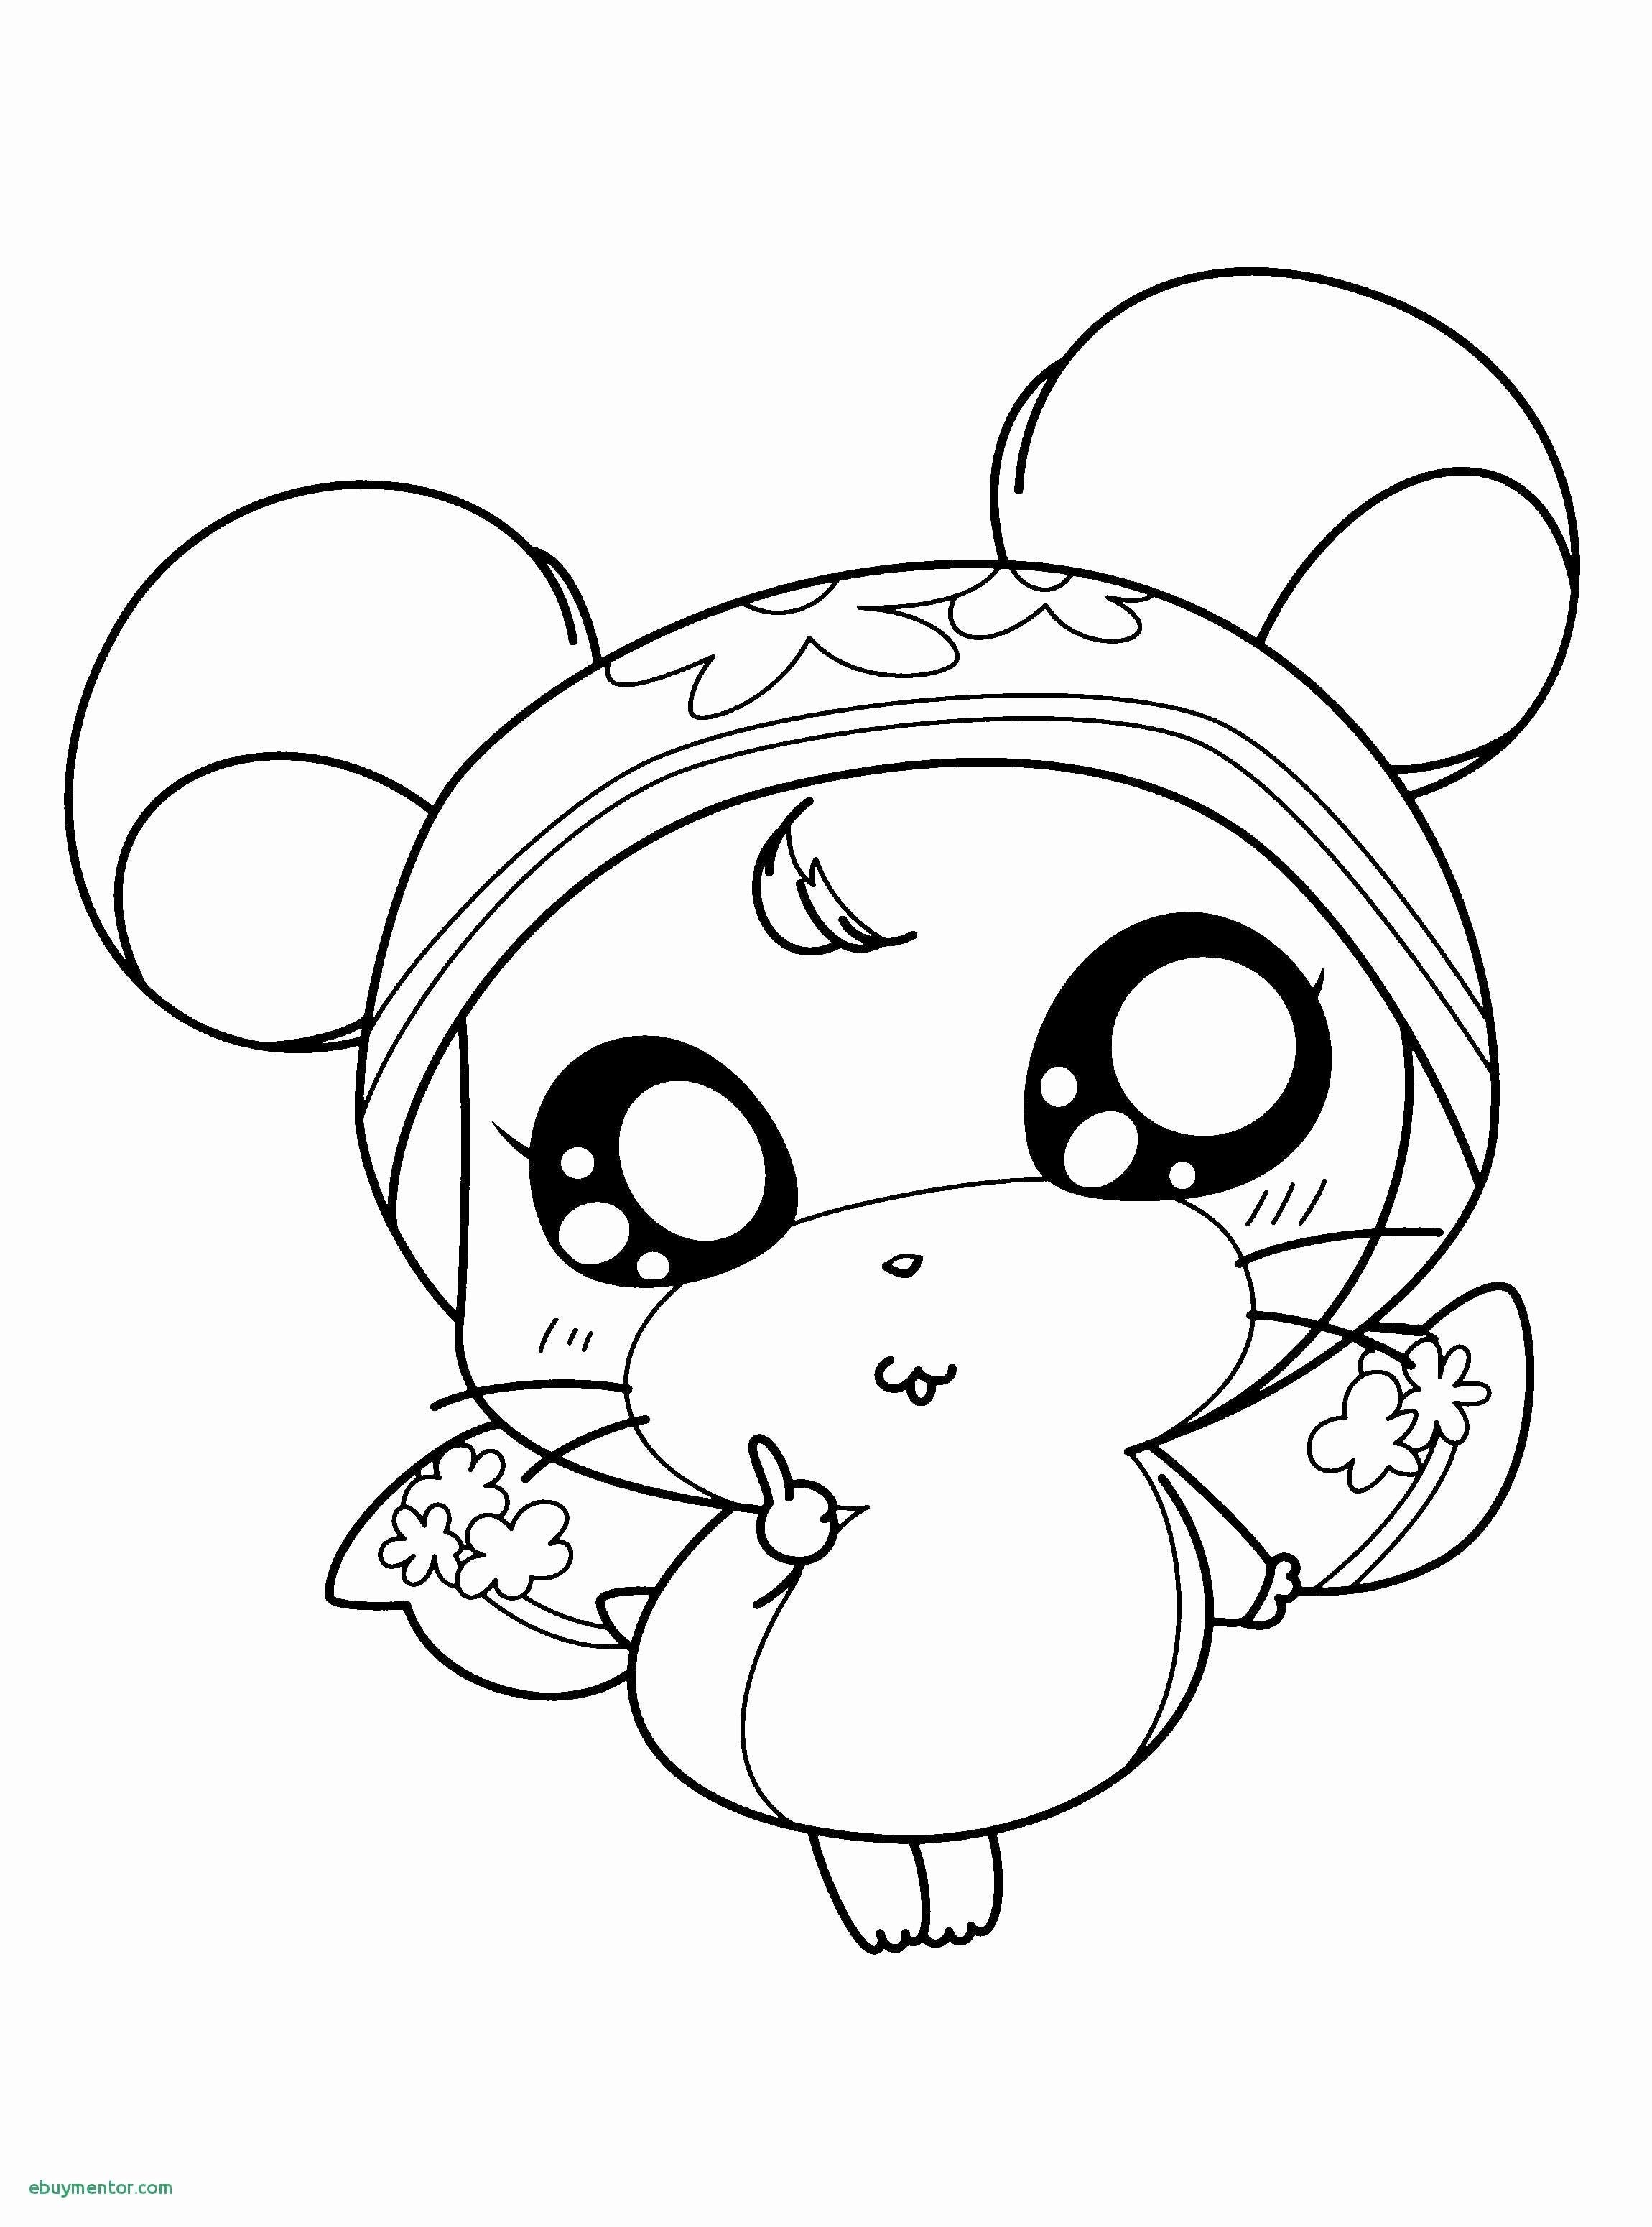 Hard To Color Coloring Pages New Beautiful Cartoon Sea Animal Coloring Pages Nicho In 2020 Princess Coloring Pages Pokemon Coloring Pages Animal Coloring Pages